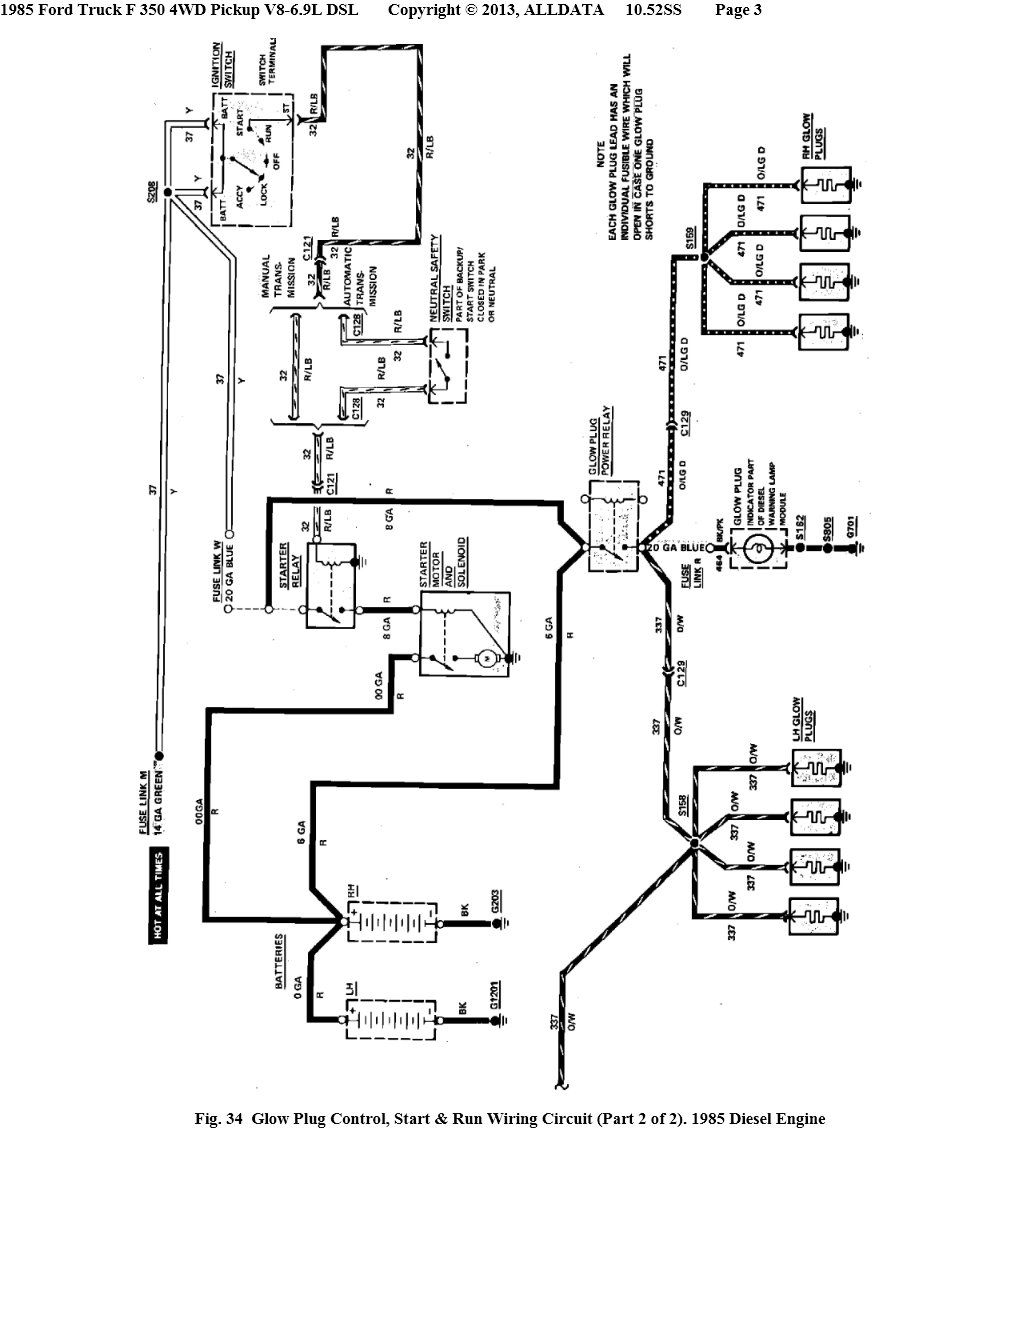 76 ford f250 wiring diagram  76  free engine image for